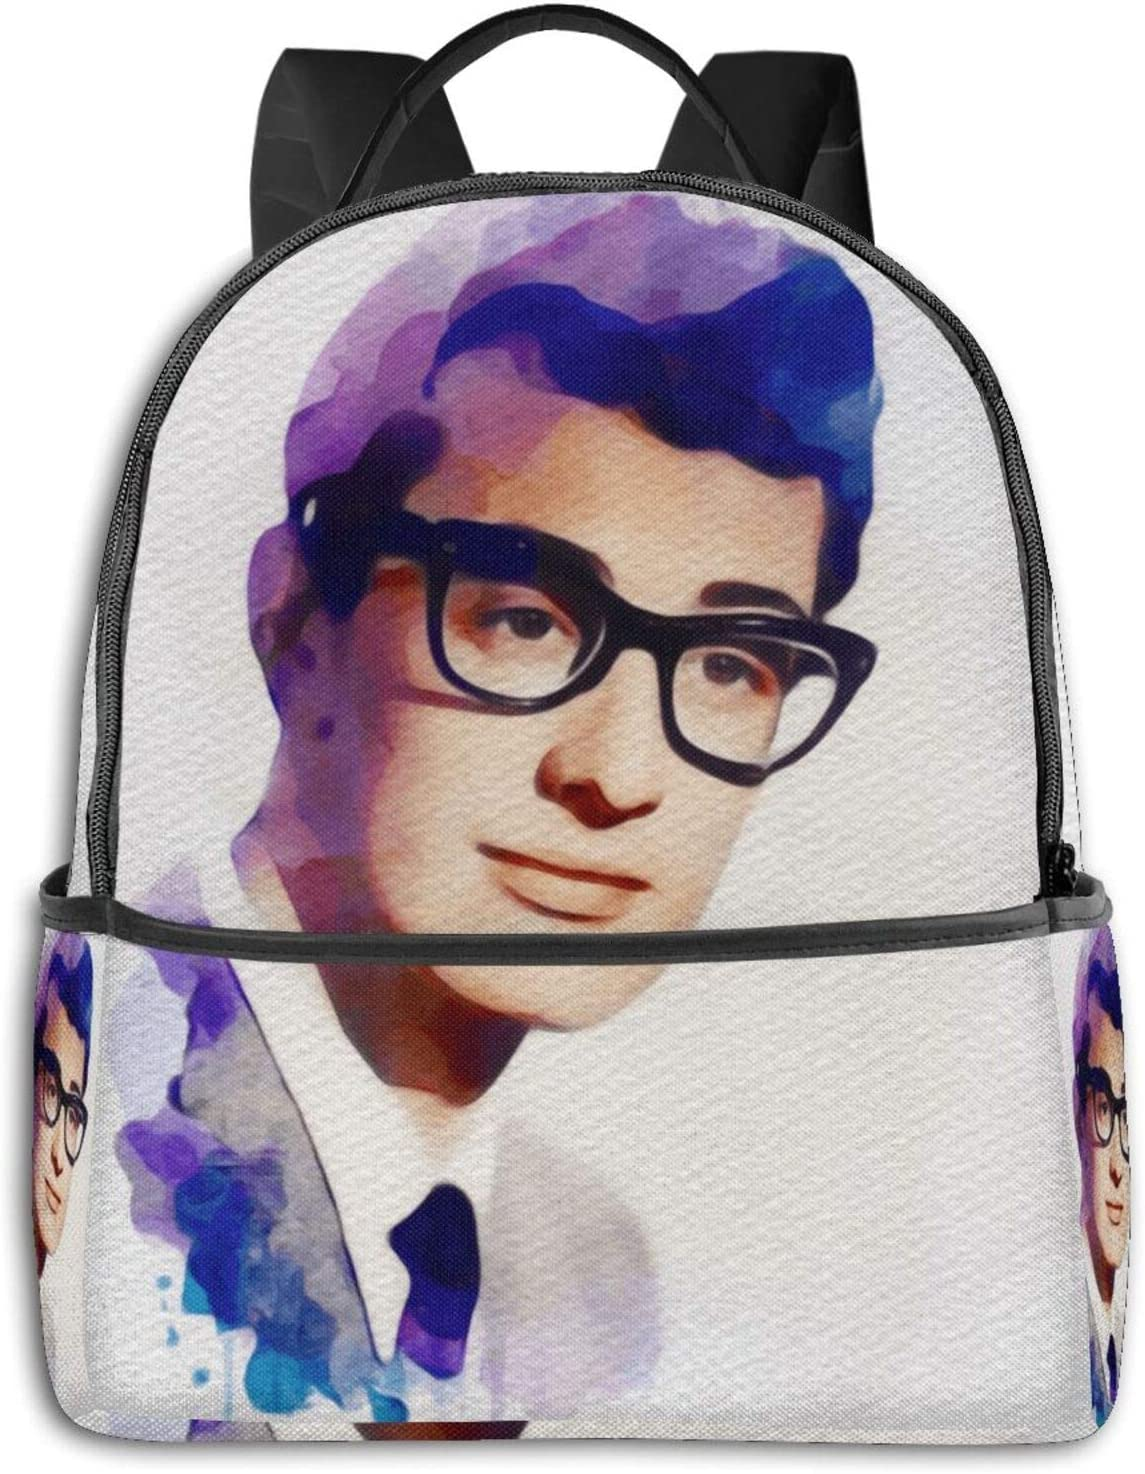 Buddy Holly, Music Legend Pullover Hoodie (2) Student School Bag School Cycling Leisure Travel Camping Outdoor Backpack